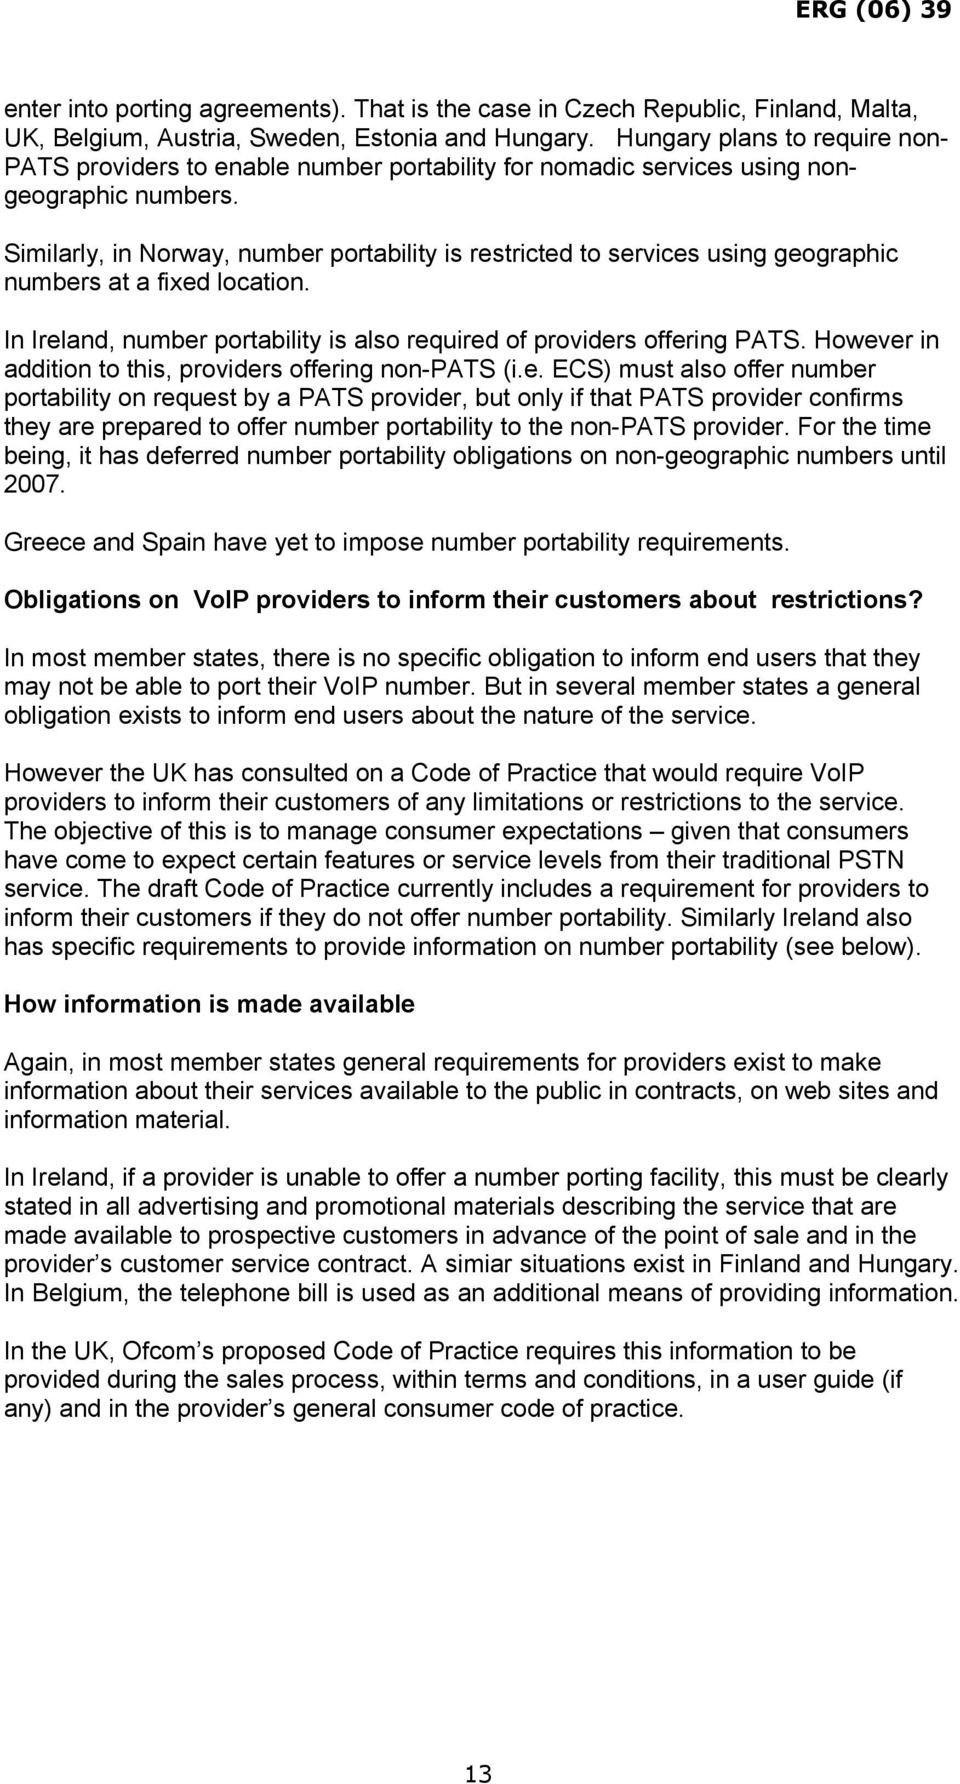 Similarly, in Norway, number portability is restricted to services using geographic numbers at a fixed location. In Ireland, number portability is also required of providers offering PATS.